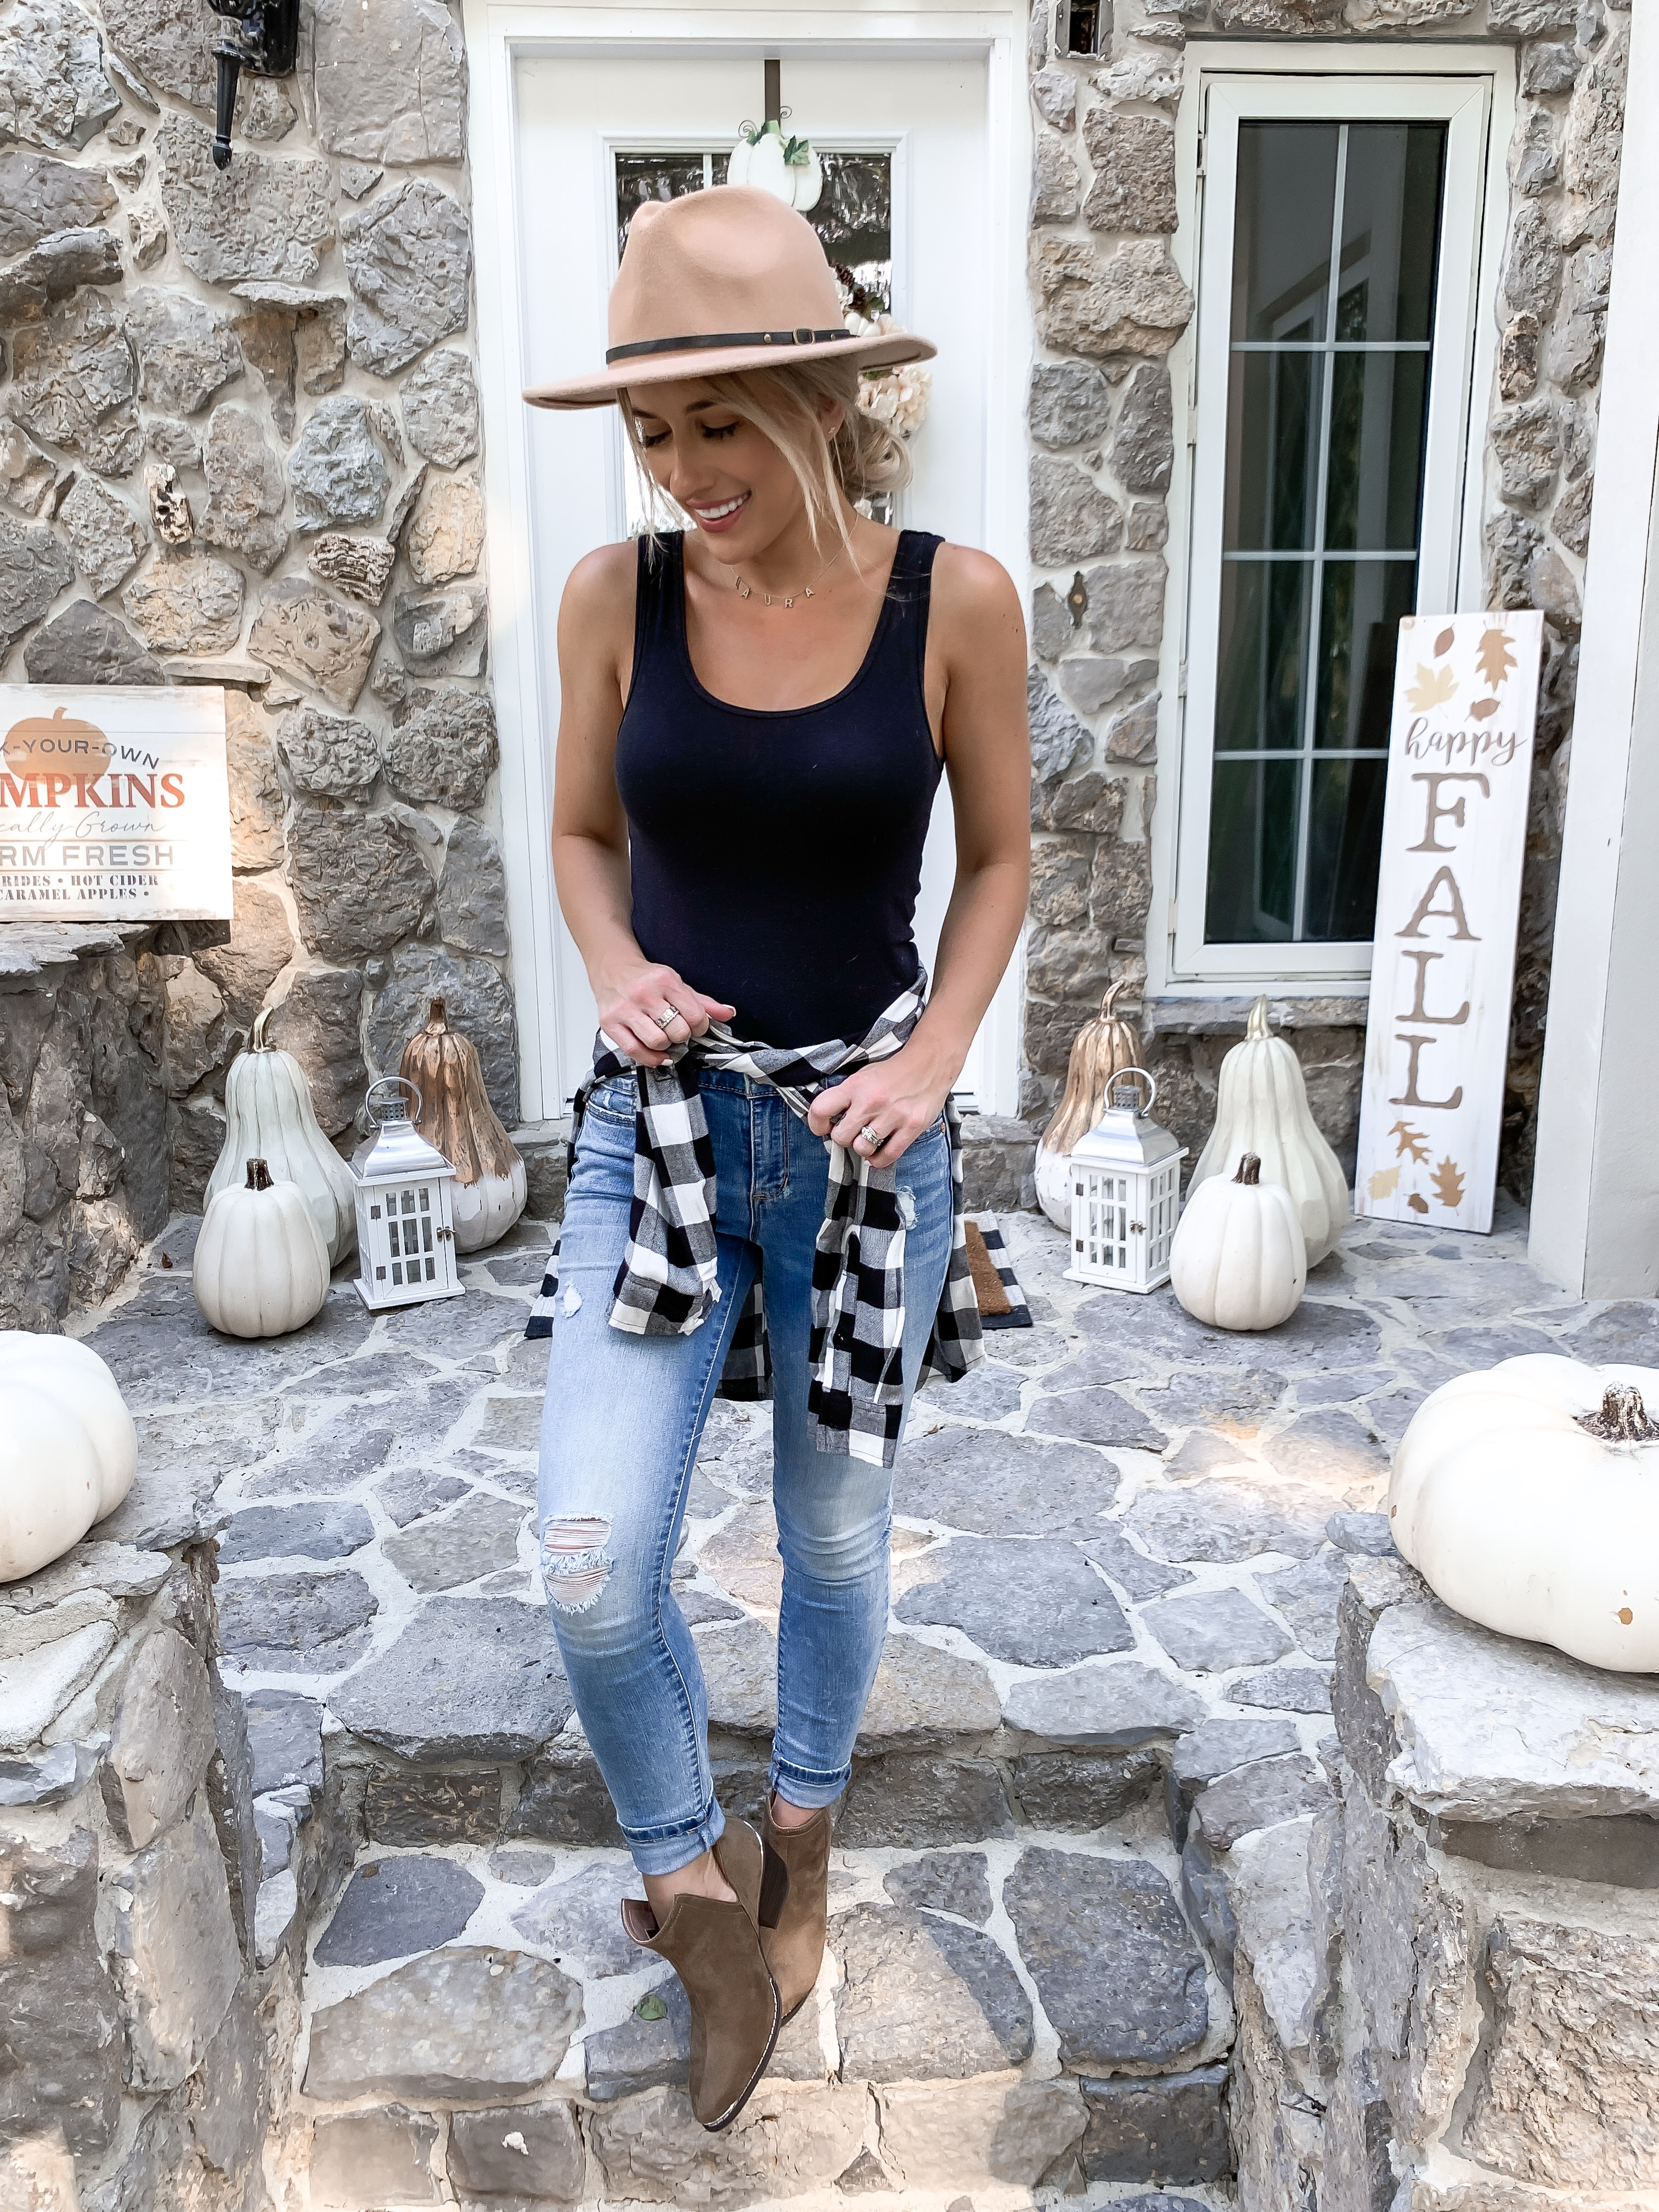 CASUAL FALL OUTFIT UNDER $50 BUFFALO CHECK SHIRT BOOTIES LAURA BEVERLIN FALL PORCH